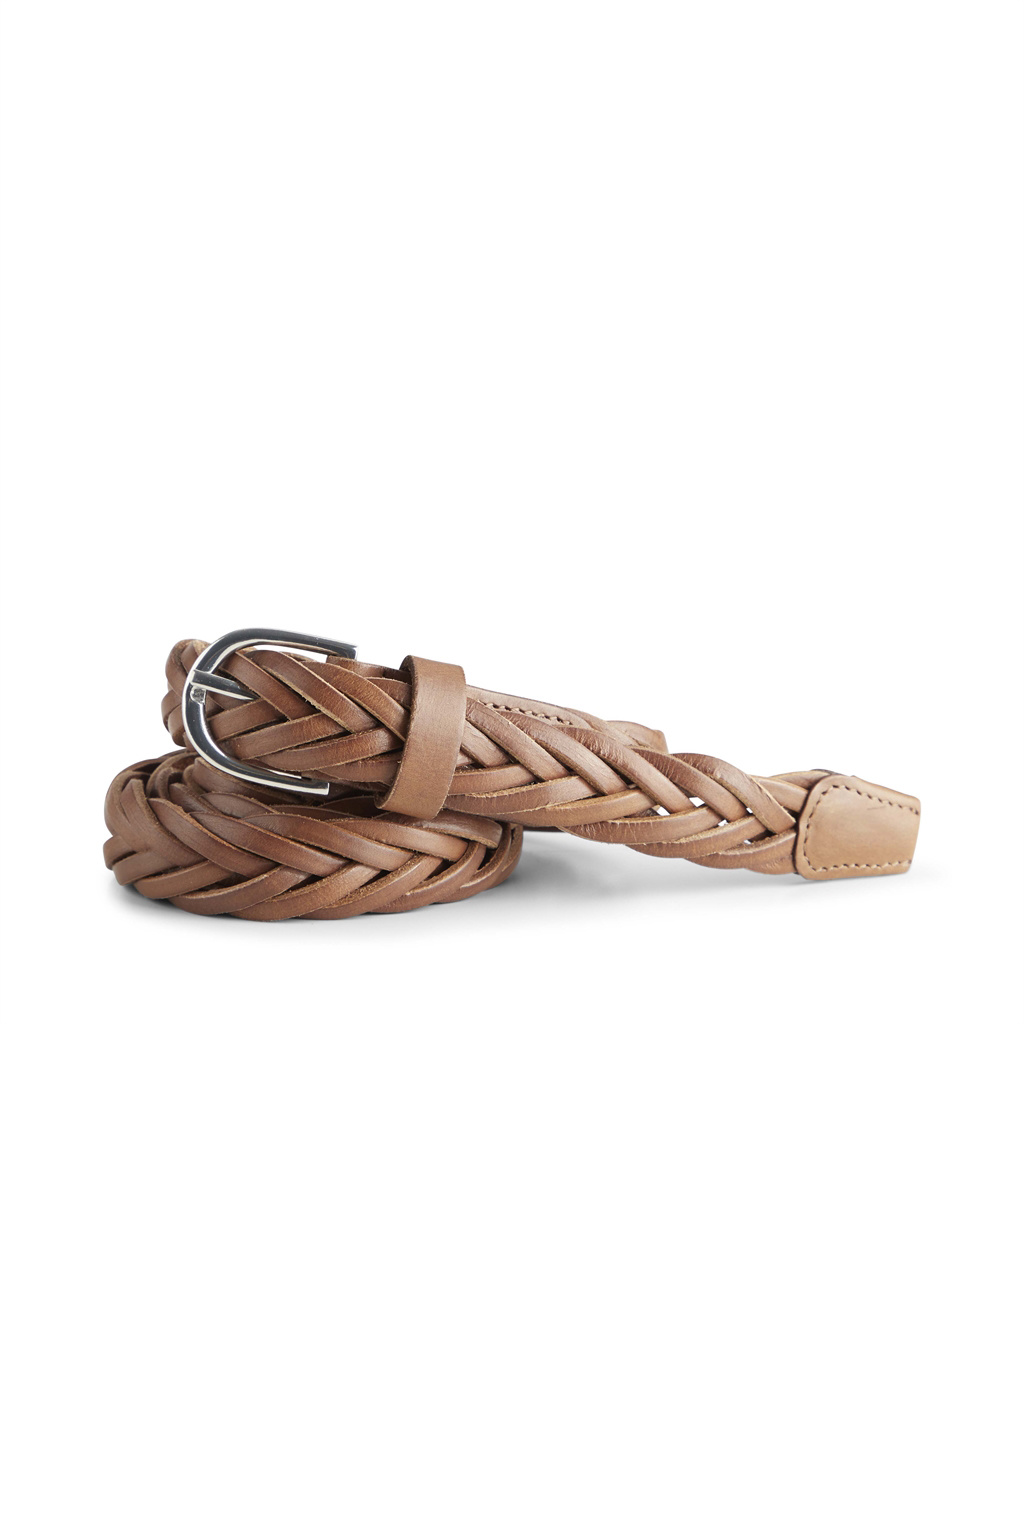 Nerea Leather Belt - Caramel-1